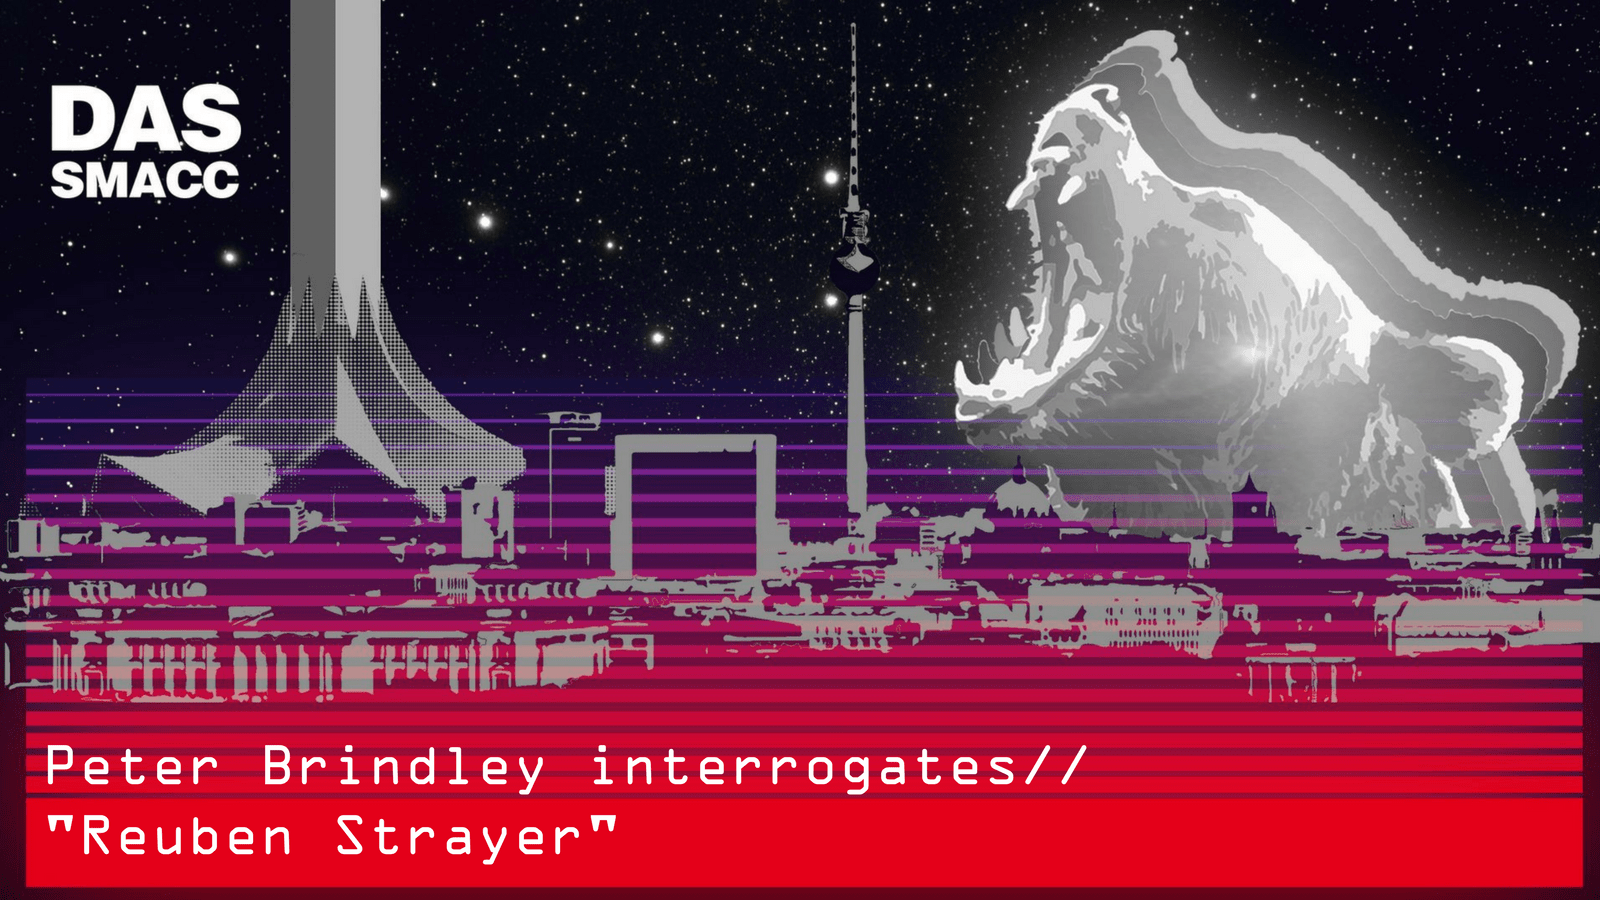 Peter Brindley interrogates: Reuben Strayer